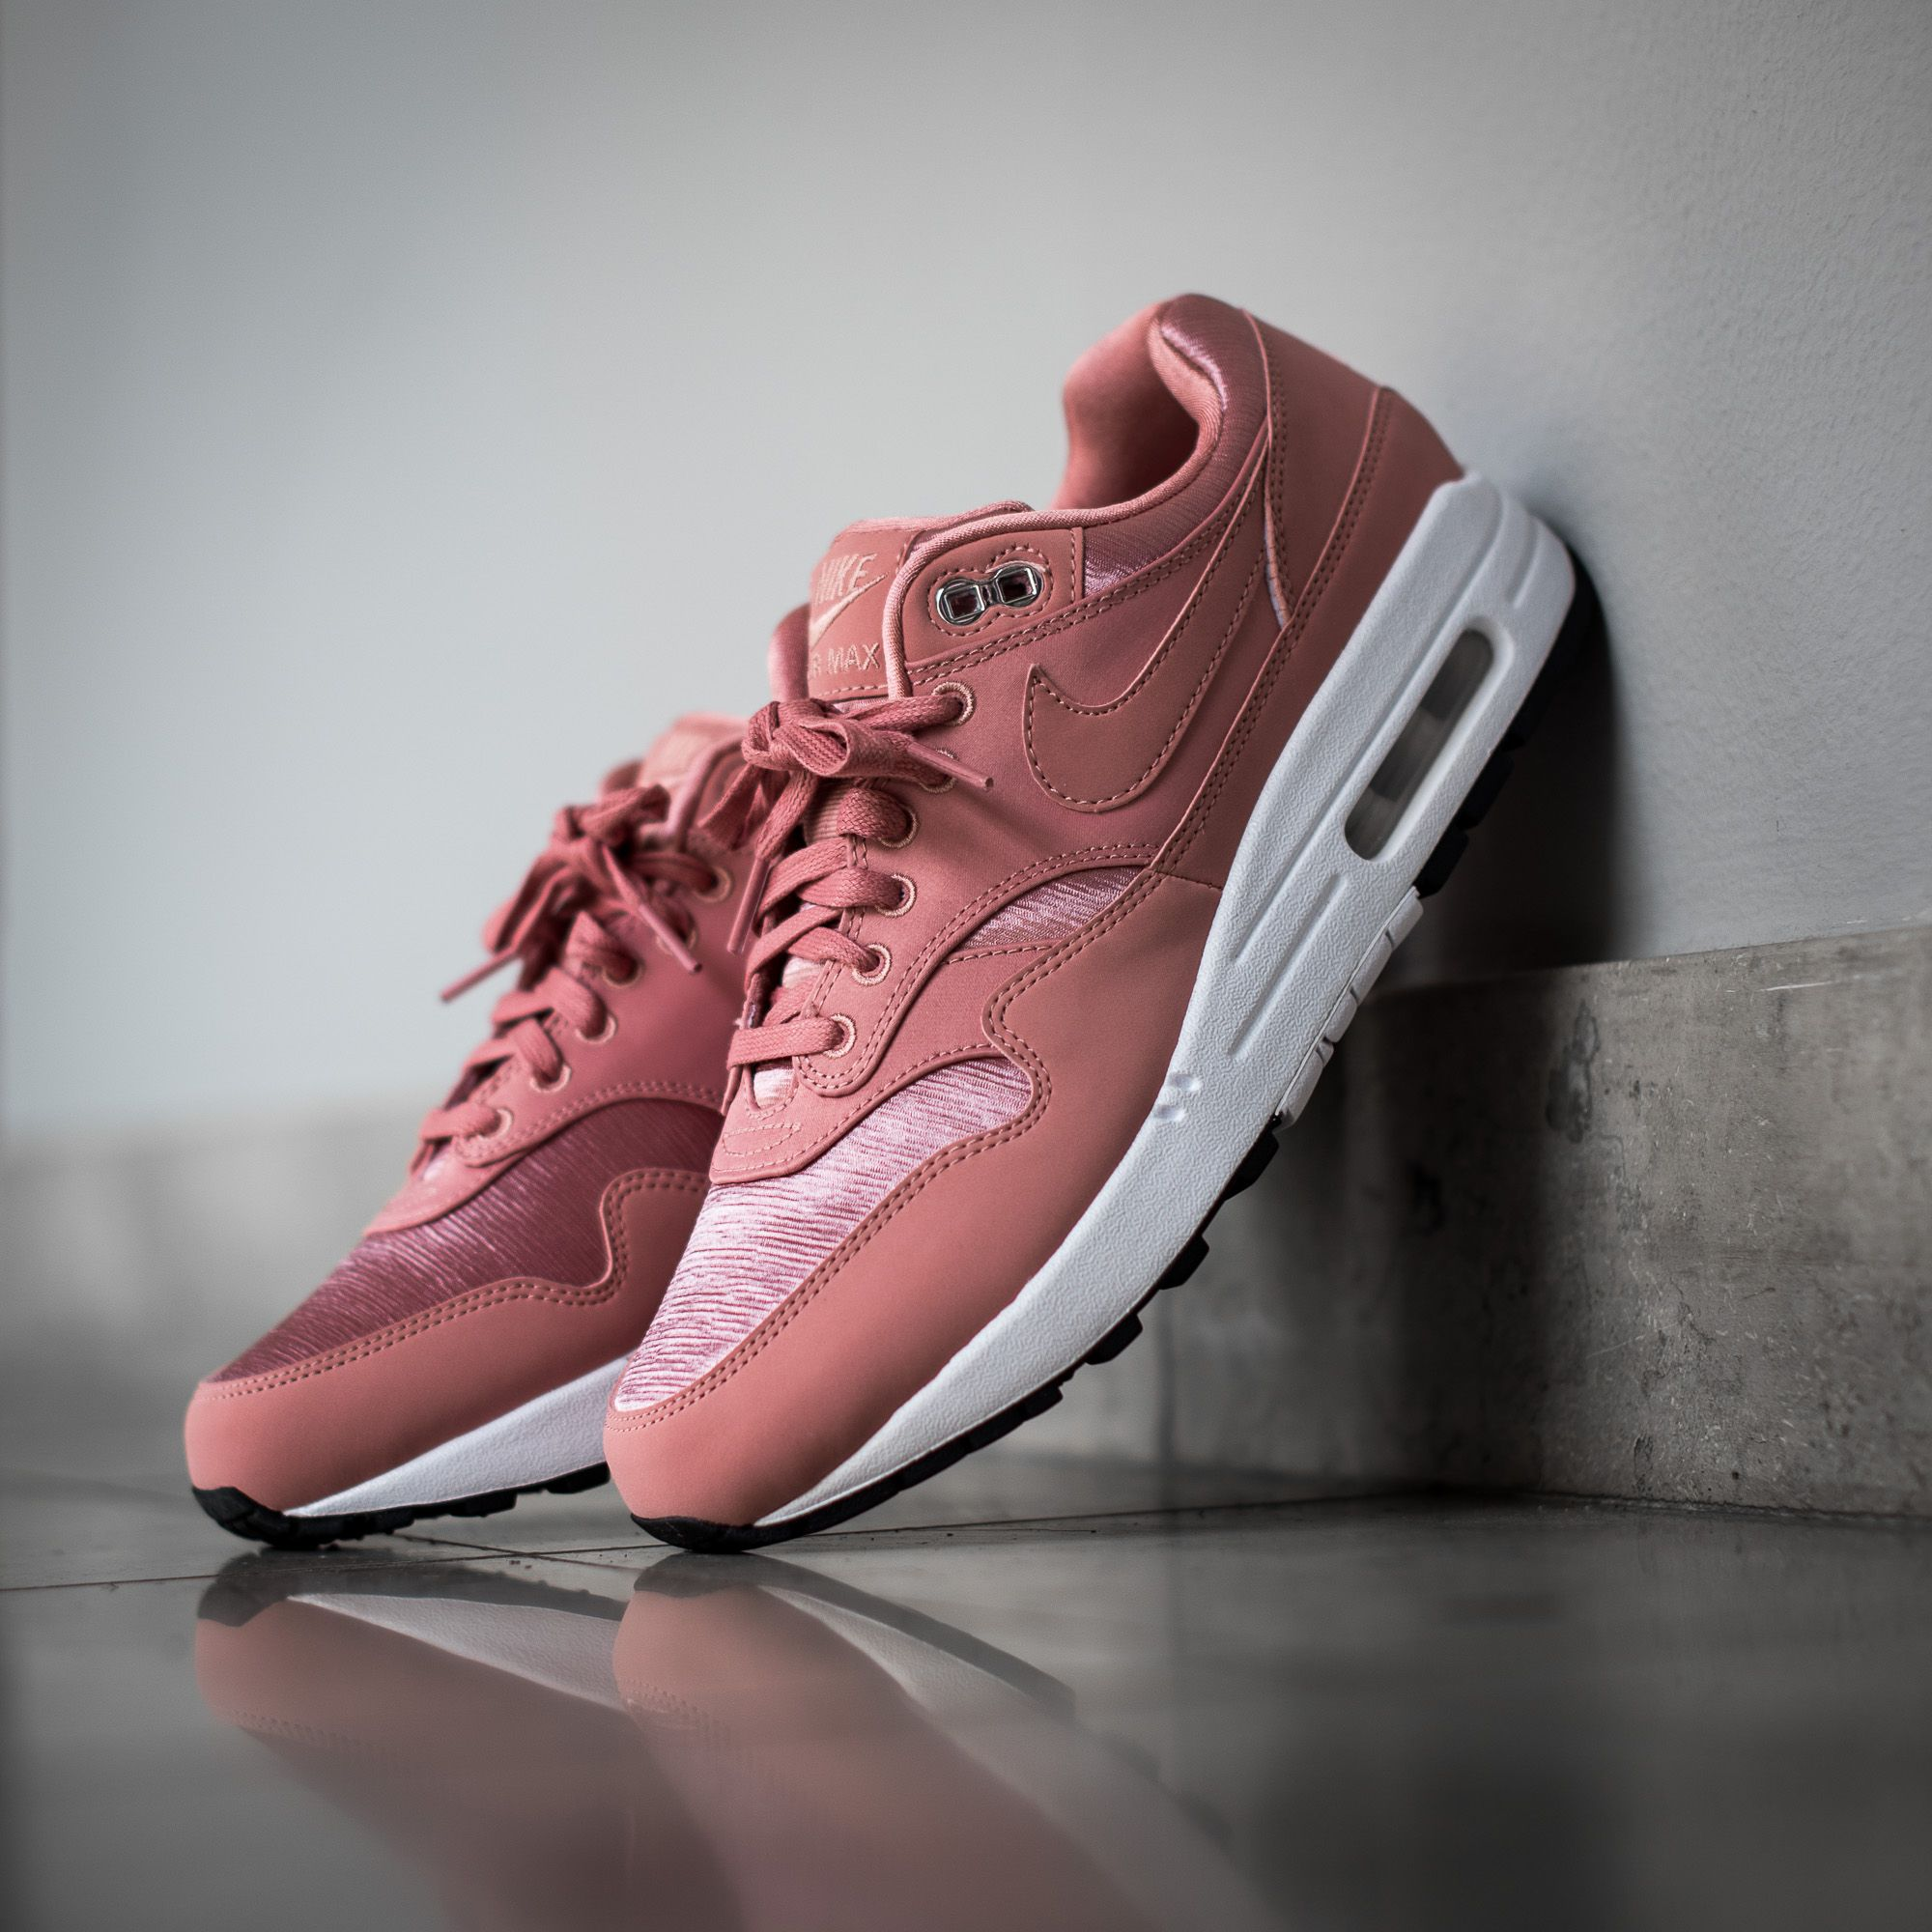 quality design 9c04c cbe43 store the nike air max 1 se is for women in a rust pink white colorway